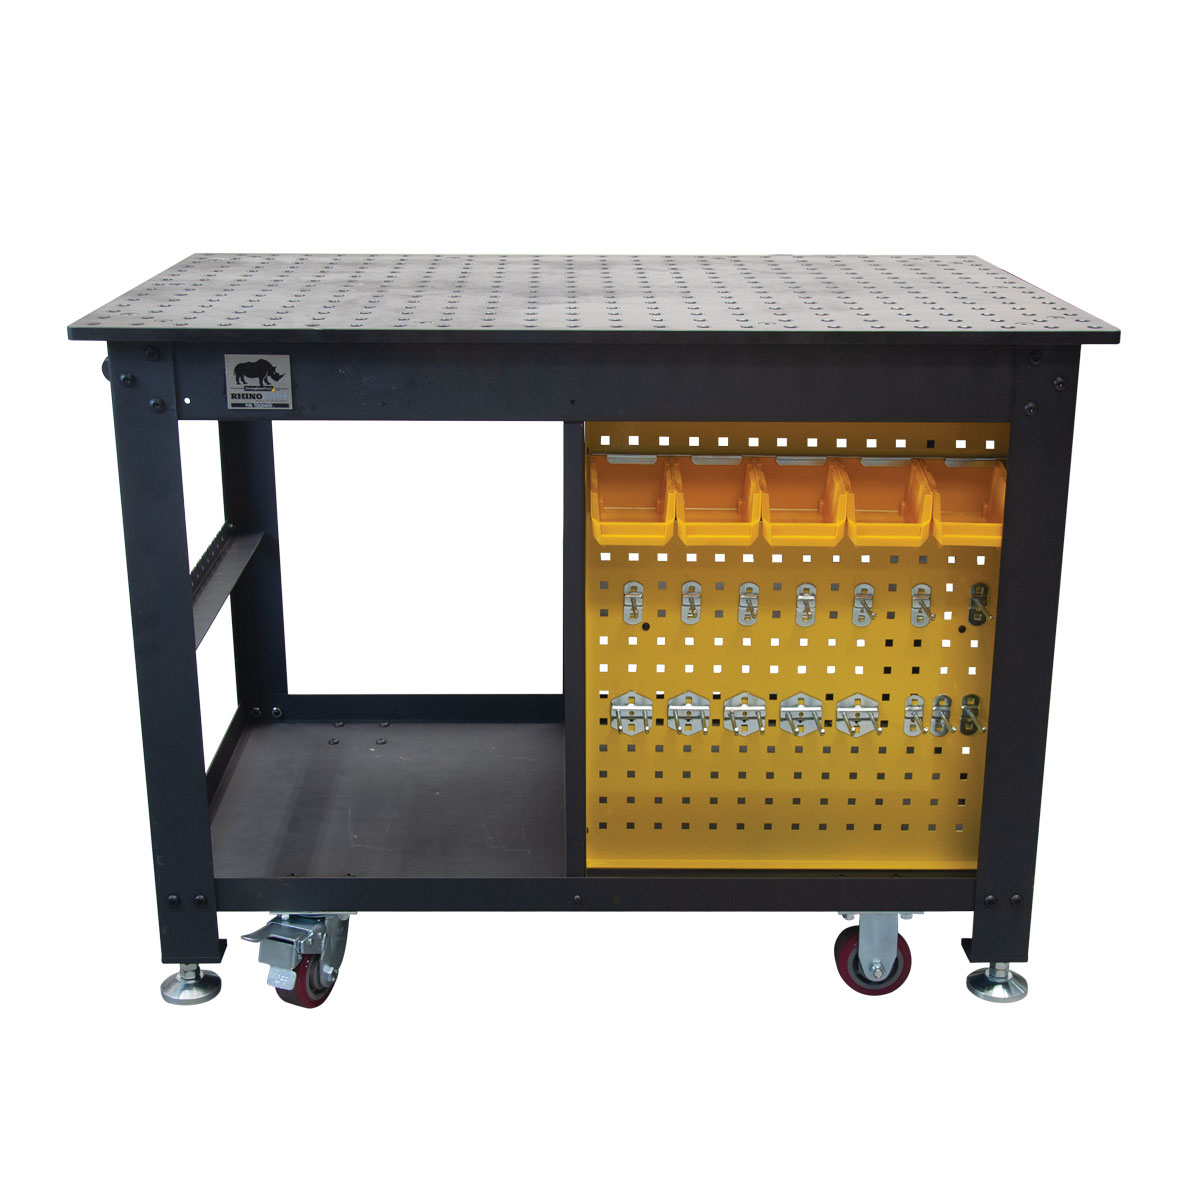 Front View of Rhino Cart Mobile fixturing welding table